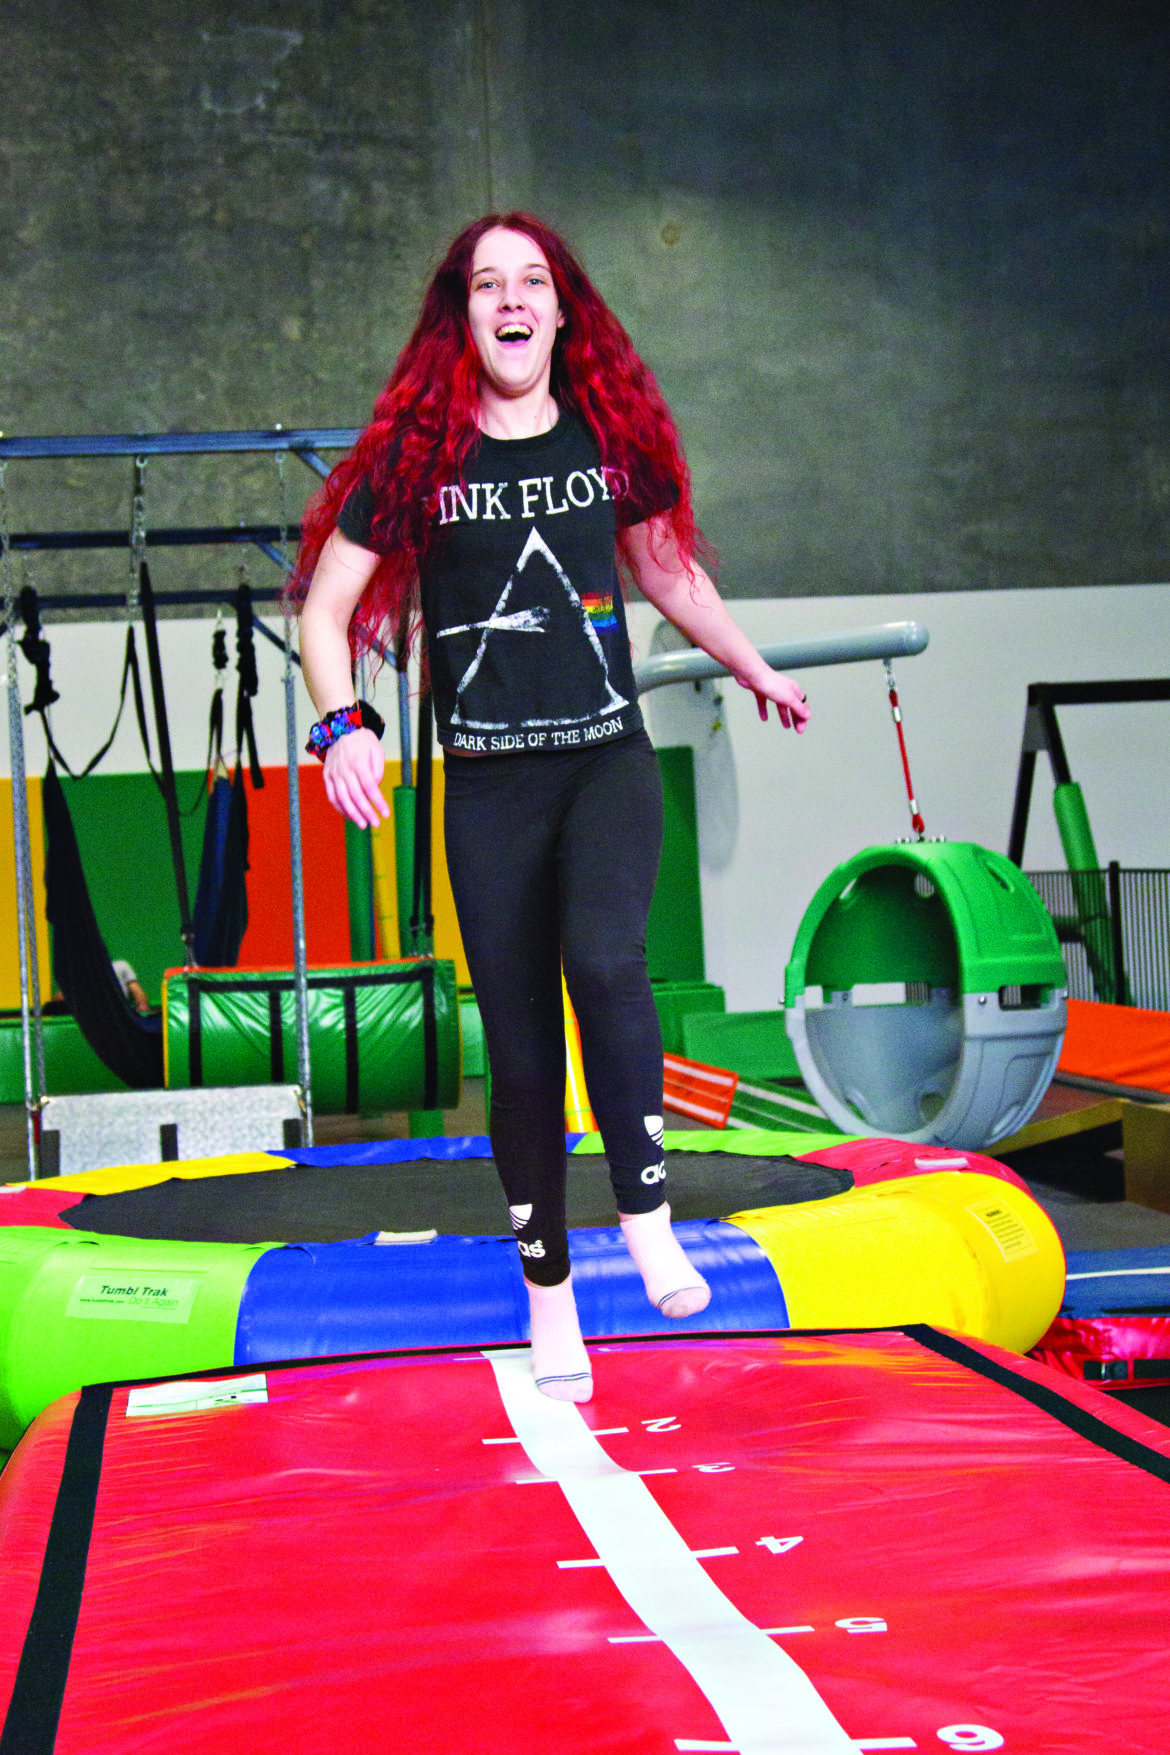 A young person with long red hair wearing a black t-shirt and long tights, jumping on a red air mattress in a Shine Shed Play Centre